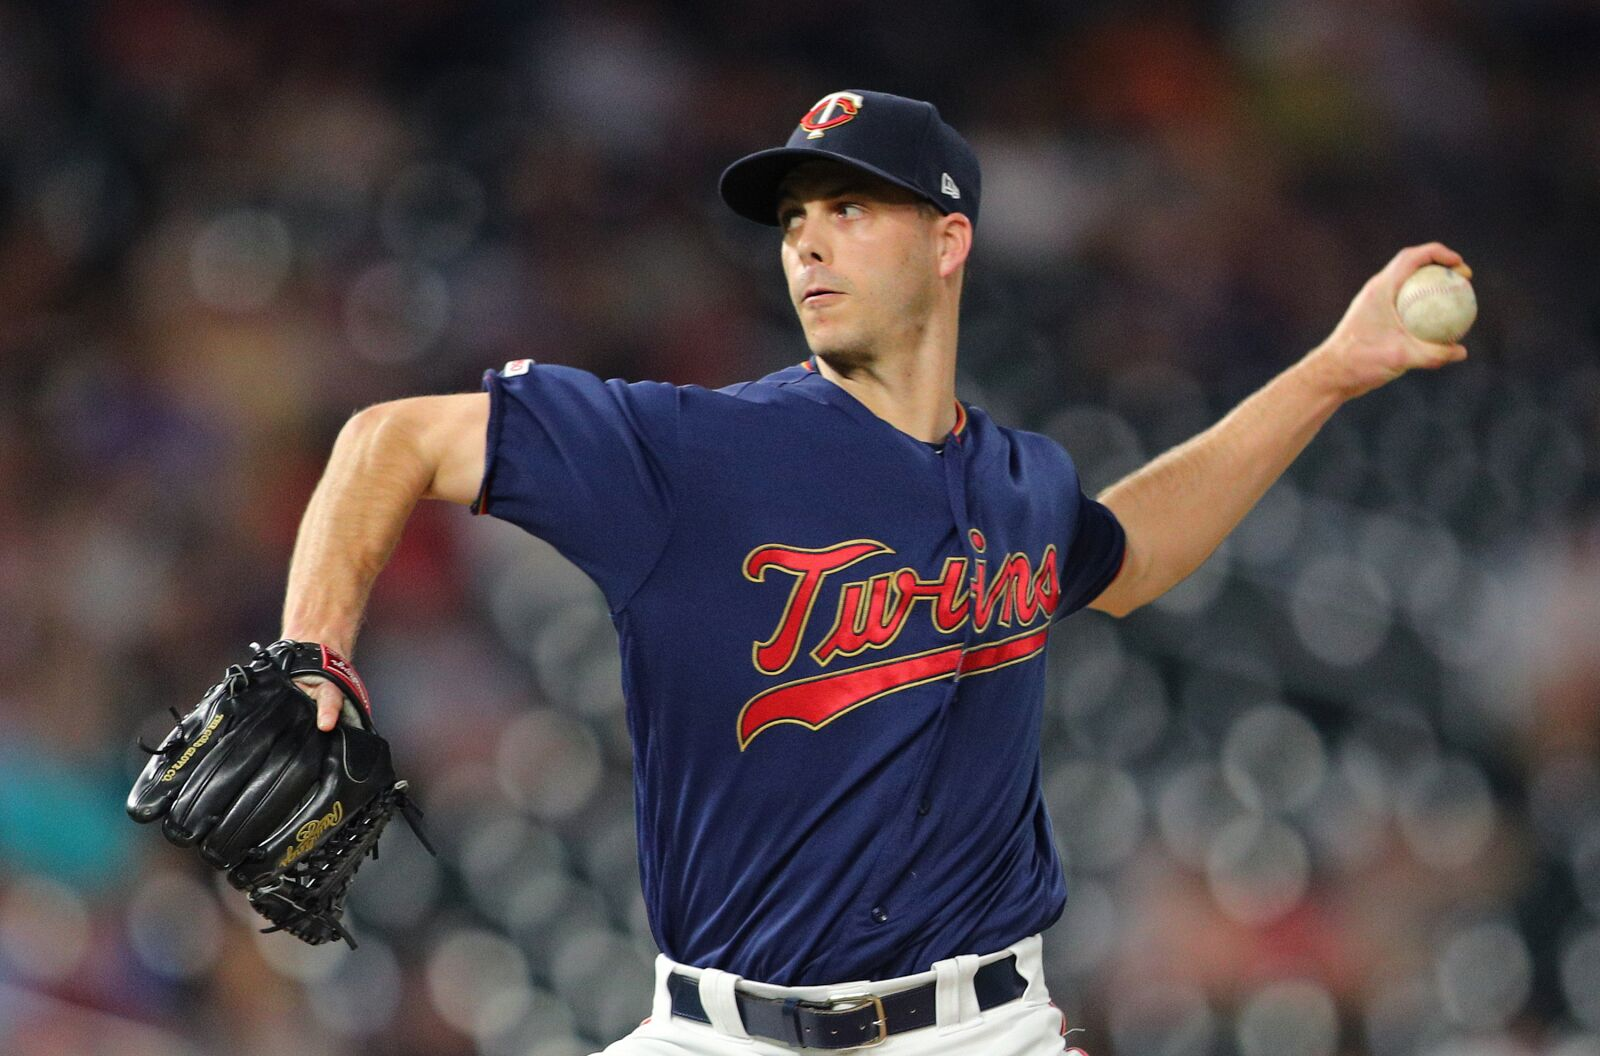 Minnesota Twins: Taylor Rogers gets to watch twin brother debut for Giants